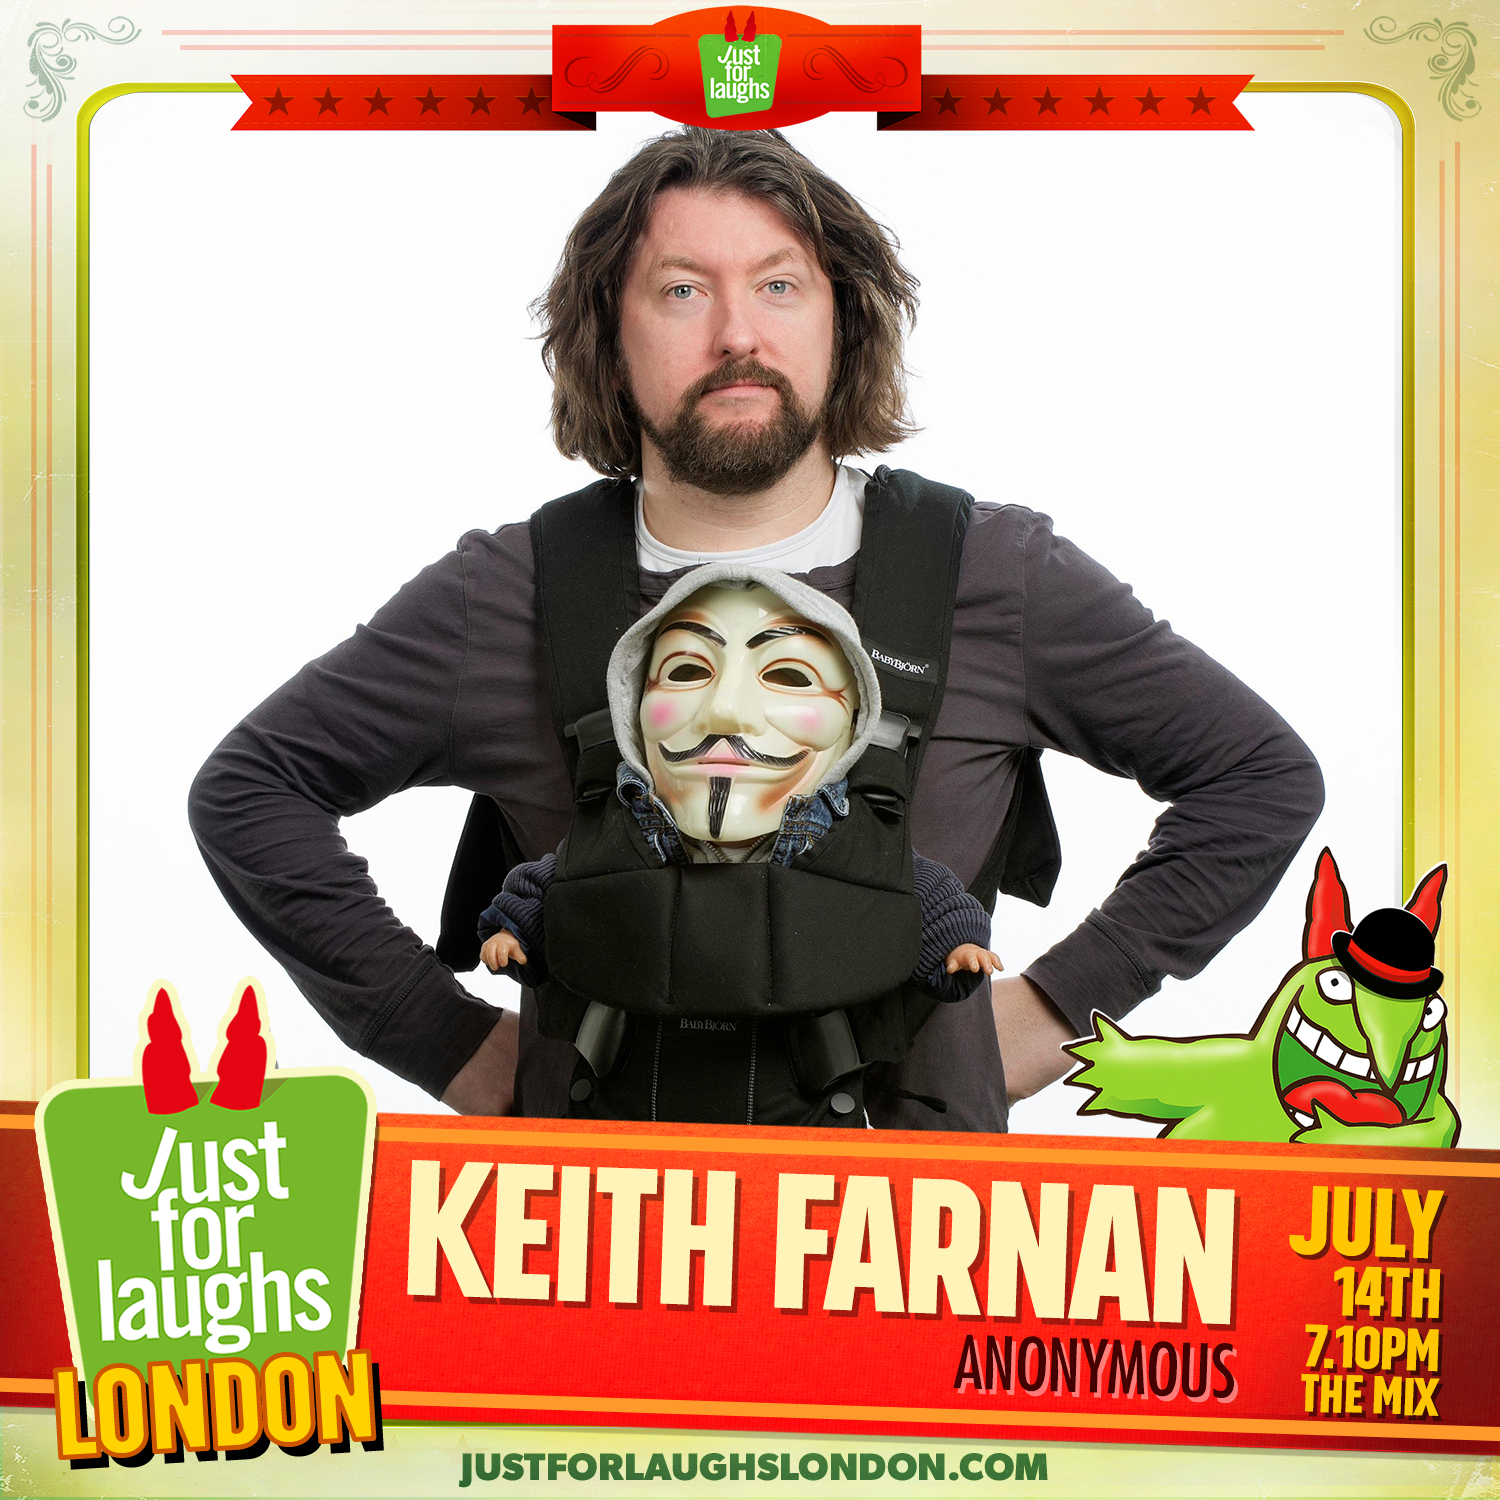 ANONYMOUS at the JUST FOR LAUGHS FESTIVAL LONDON 14th July